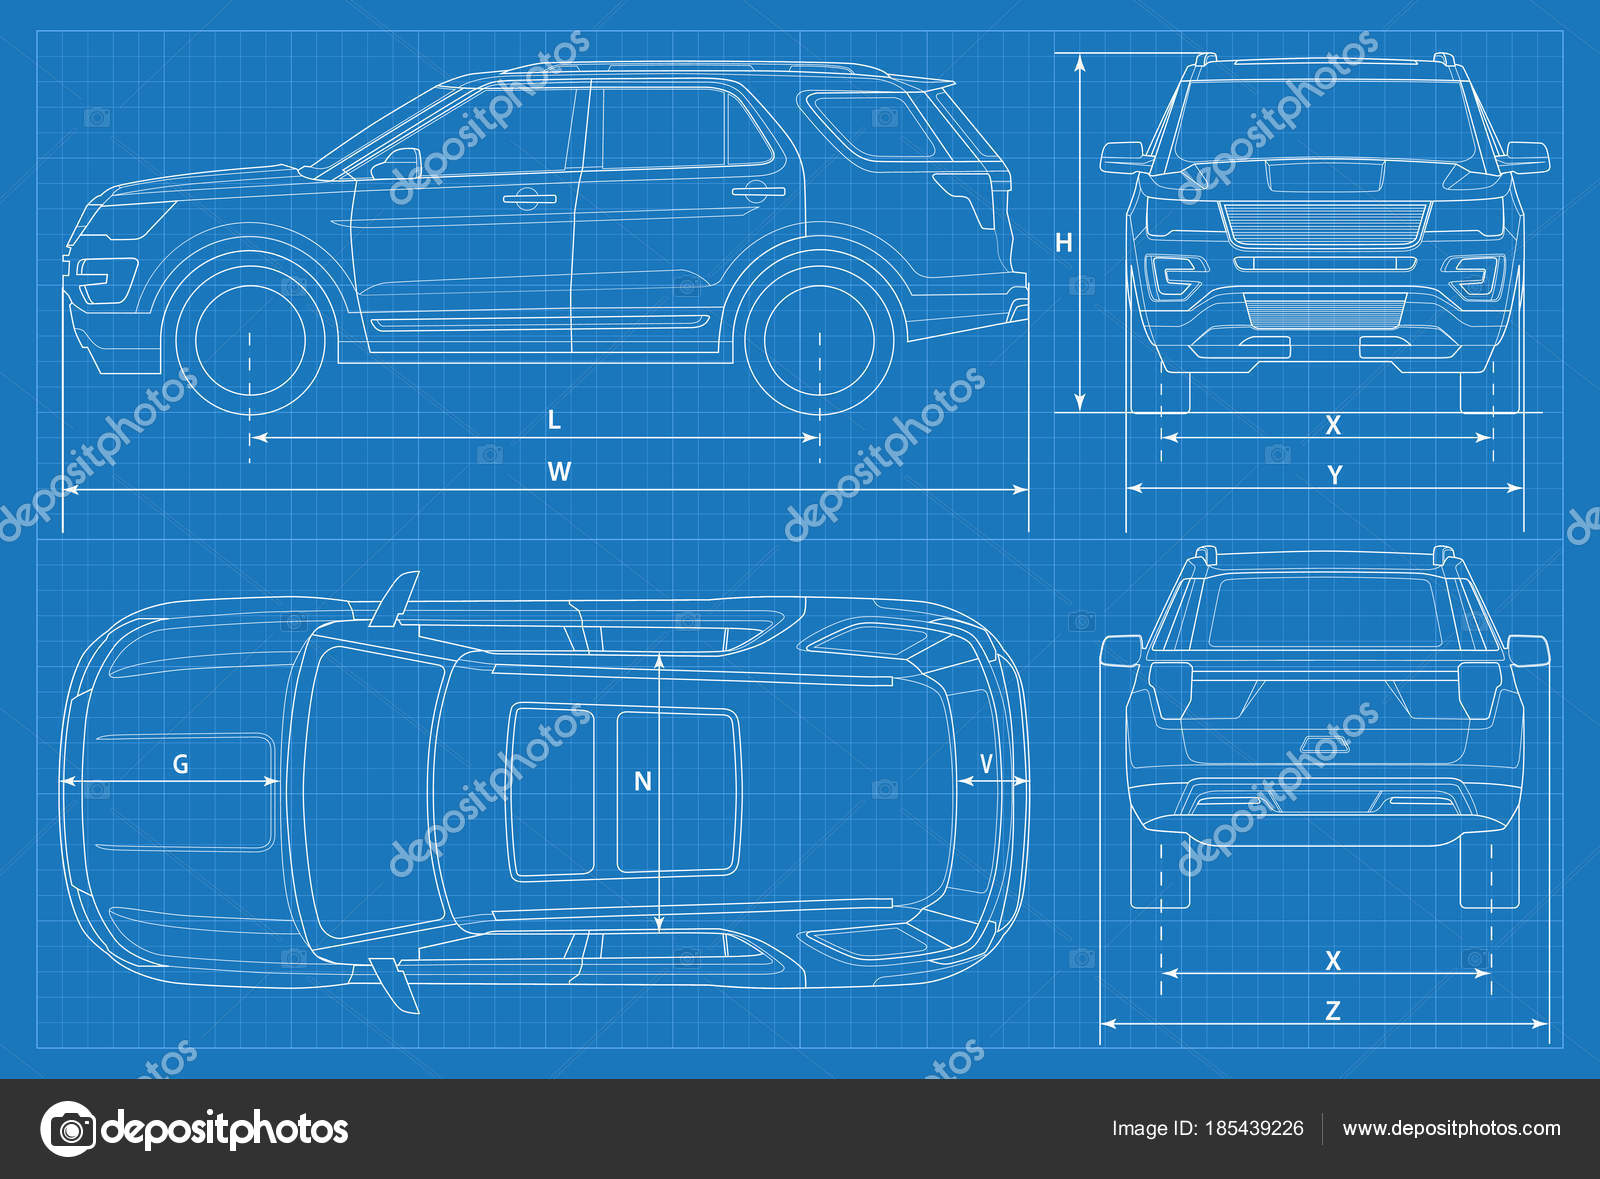 Off road car schematic or suv car blueprint vector illustration off road car schematic or suv car blueprint vector illustration off road vehicle malvernweather Images